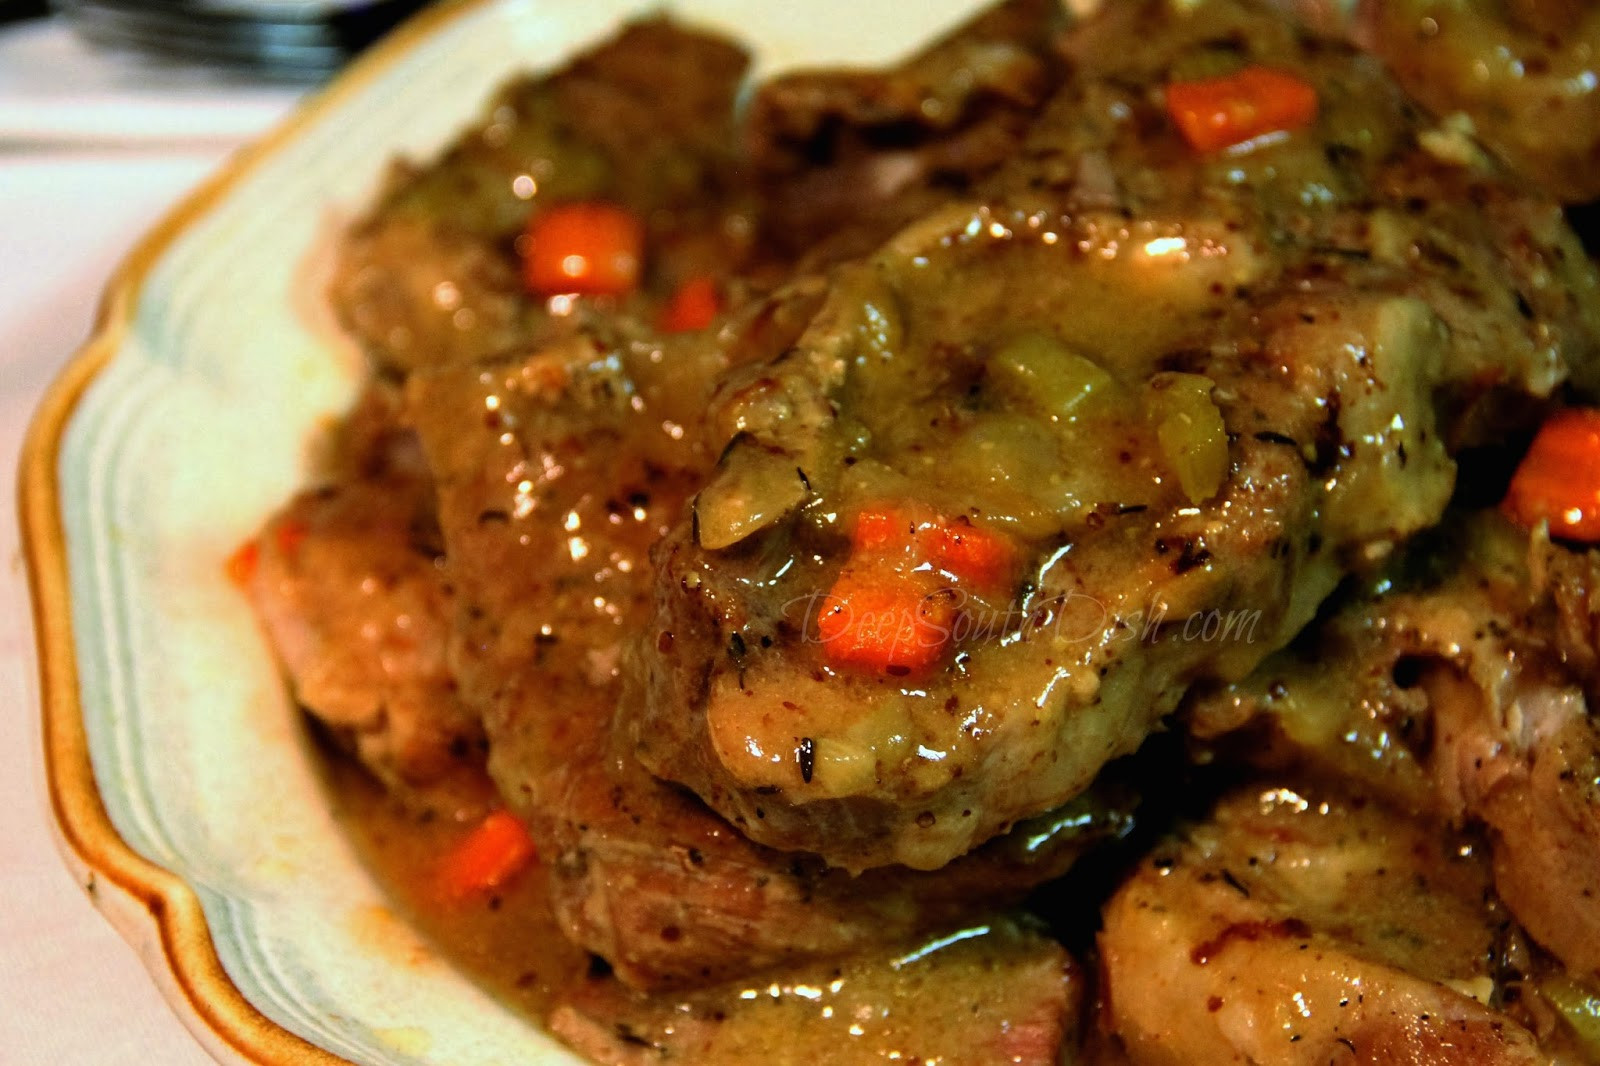 Braised Country Style Pork Ribs  Deep South Dish Slow Braised Country Style Ribs